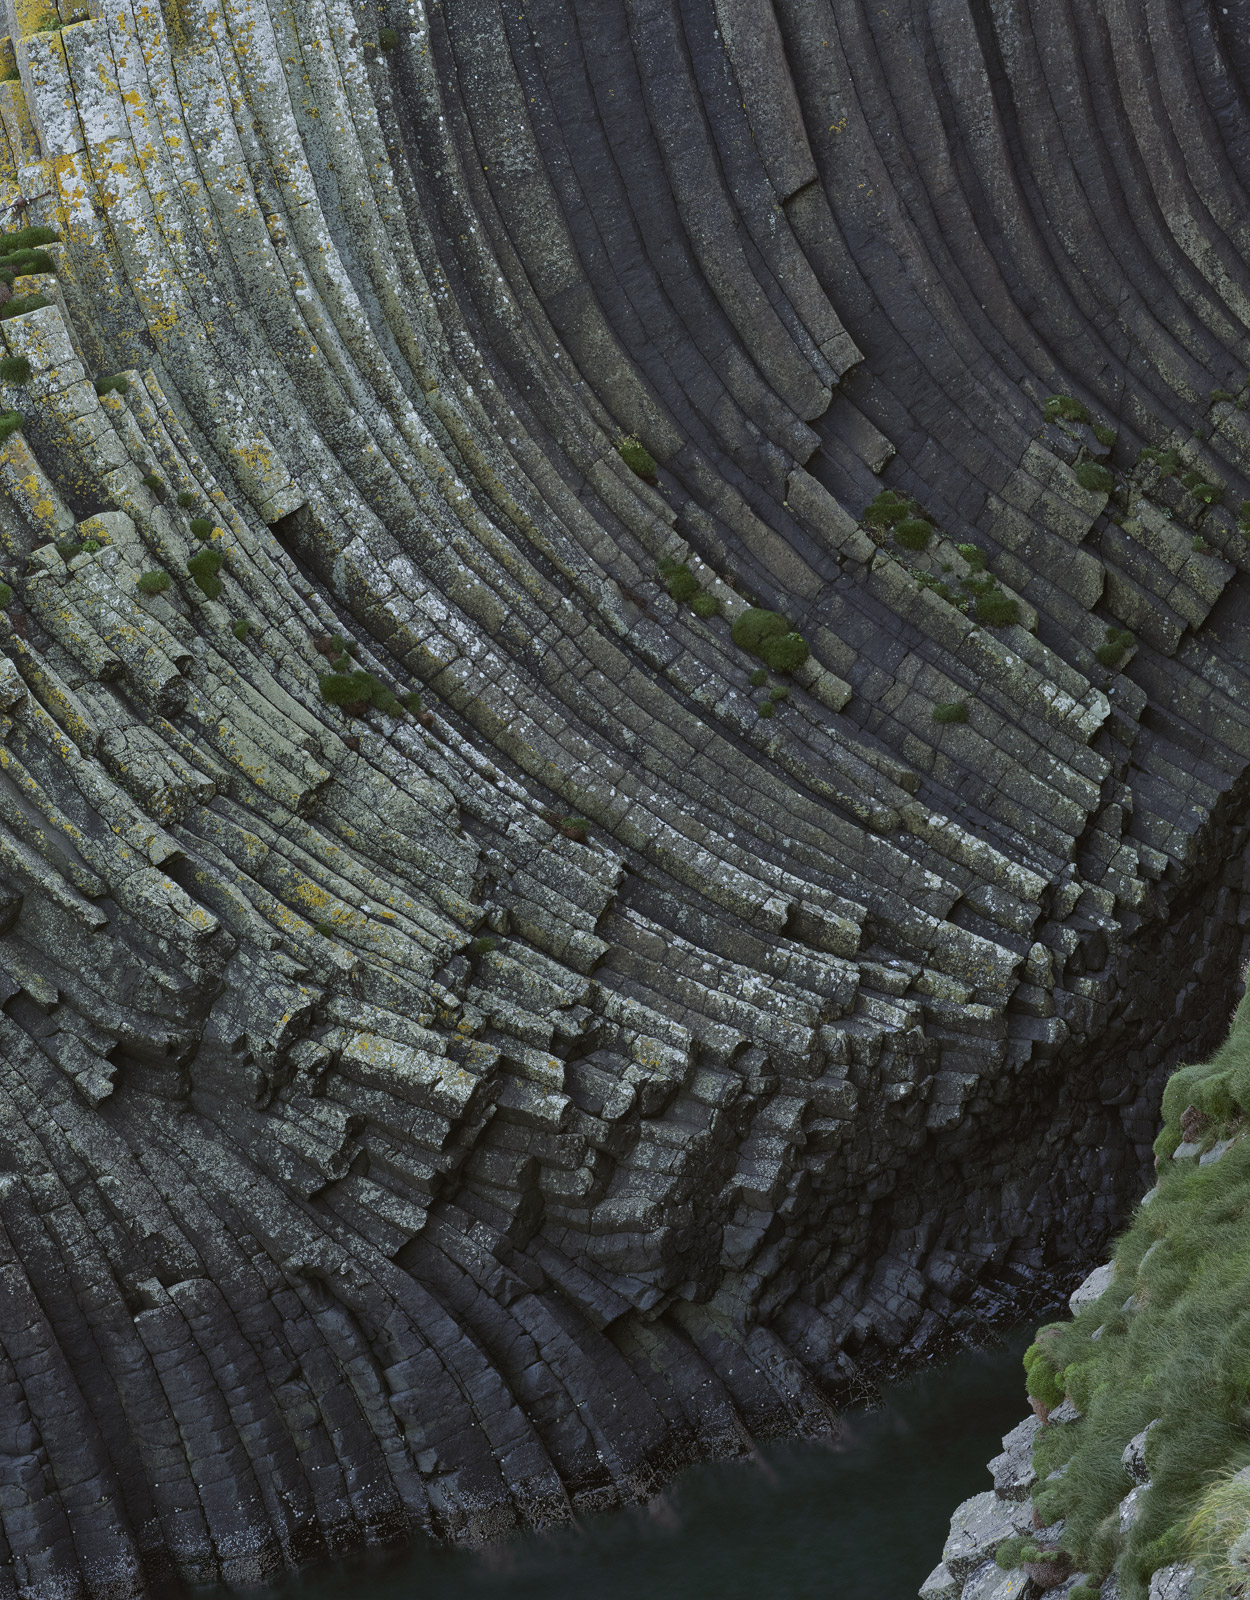 Perhaps the most remarkable of all the basalt formations on the remarkable island of staffa is right by the boat landing point...